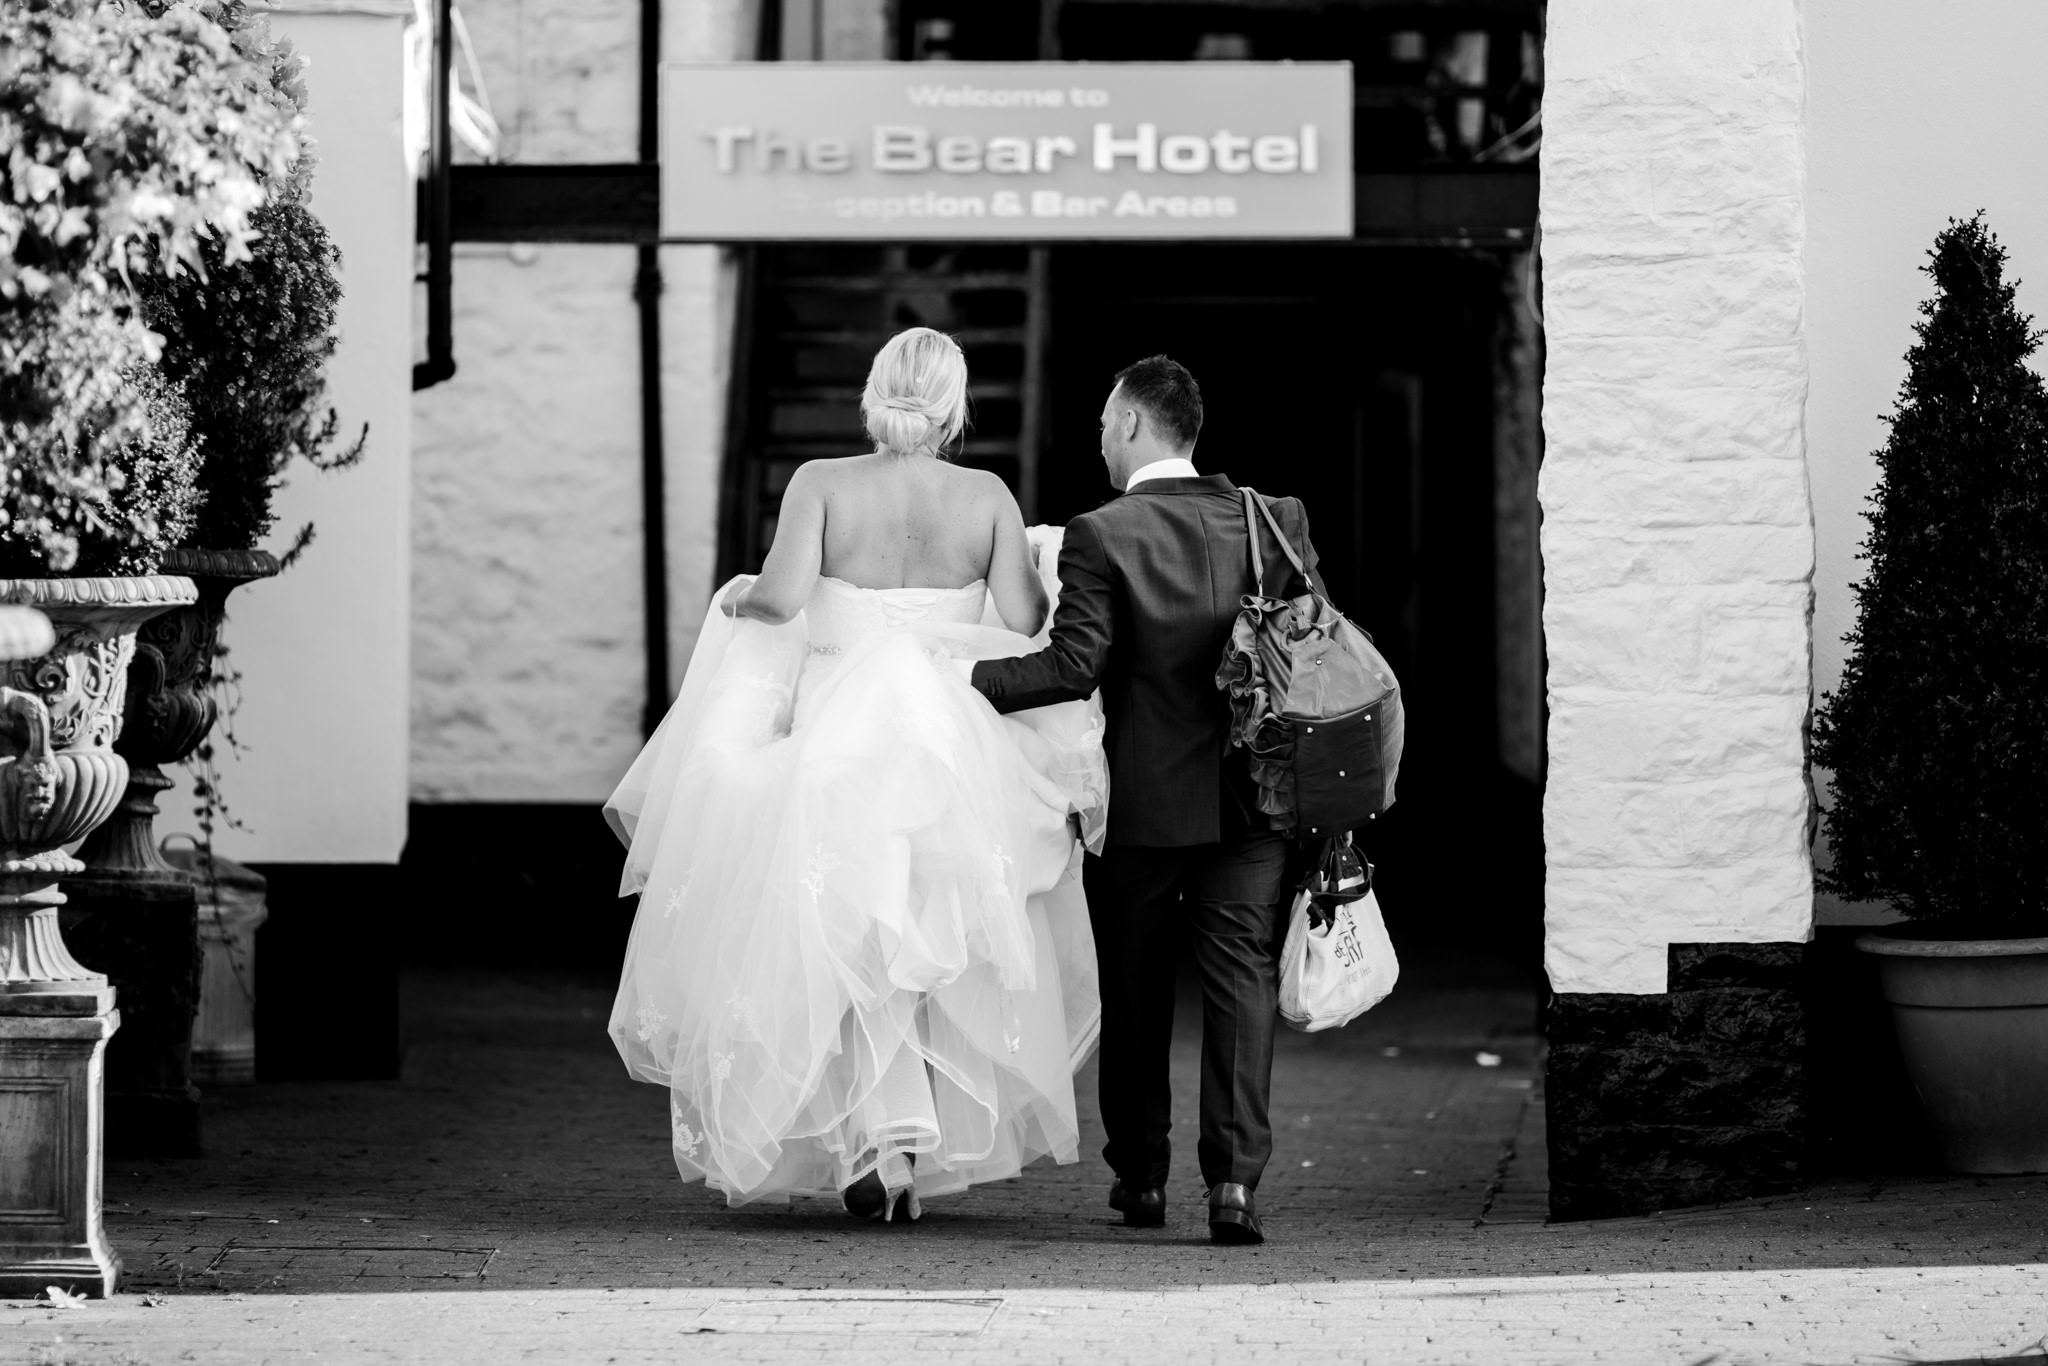 The bear hotel wedding photography